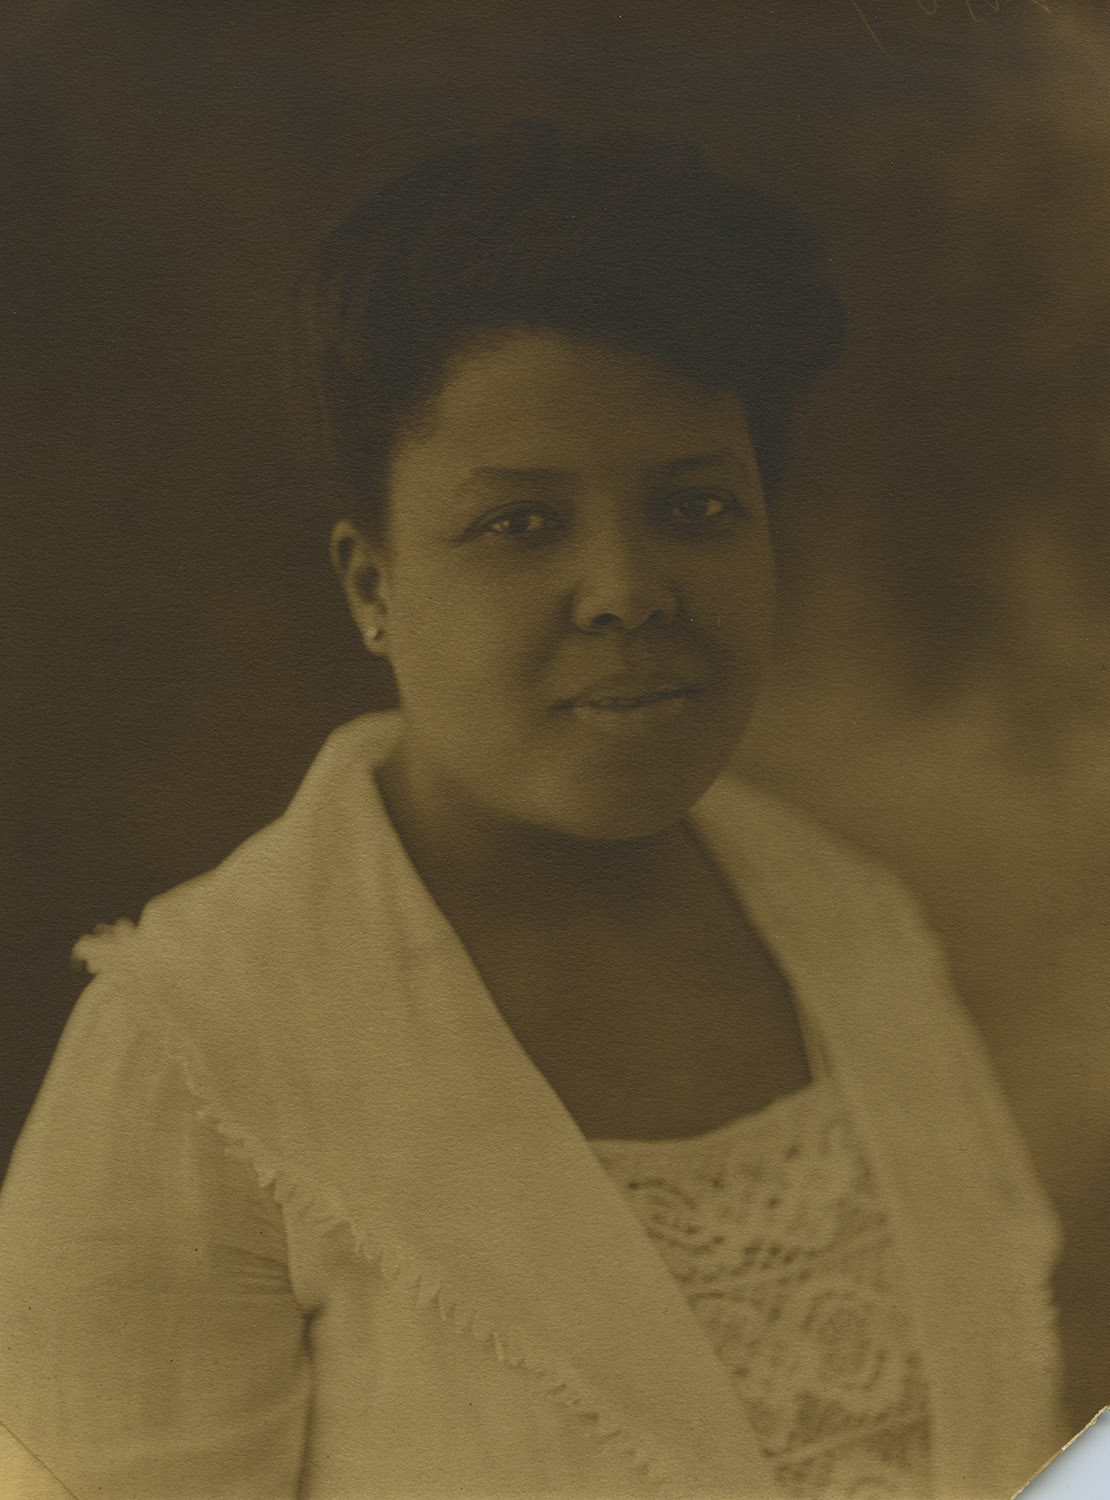 Daisy Lampkin. From the Childs Family Collection on Daisy Lampkin, MSS 657, Detre Library & Archives at the History Center.